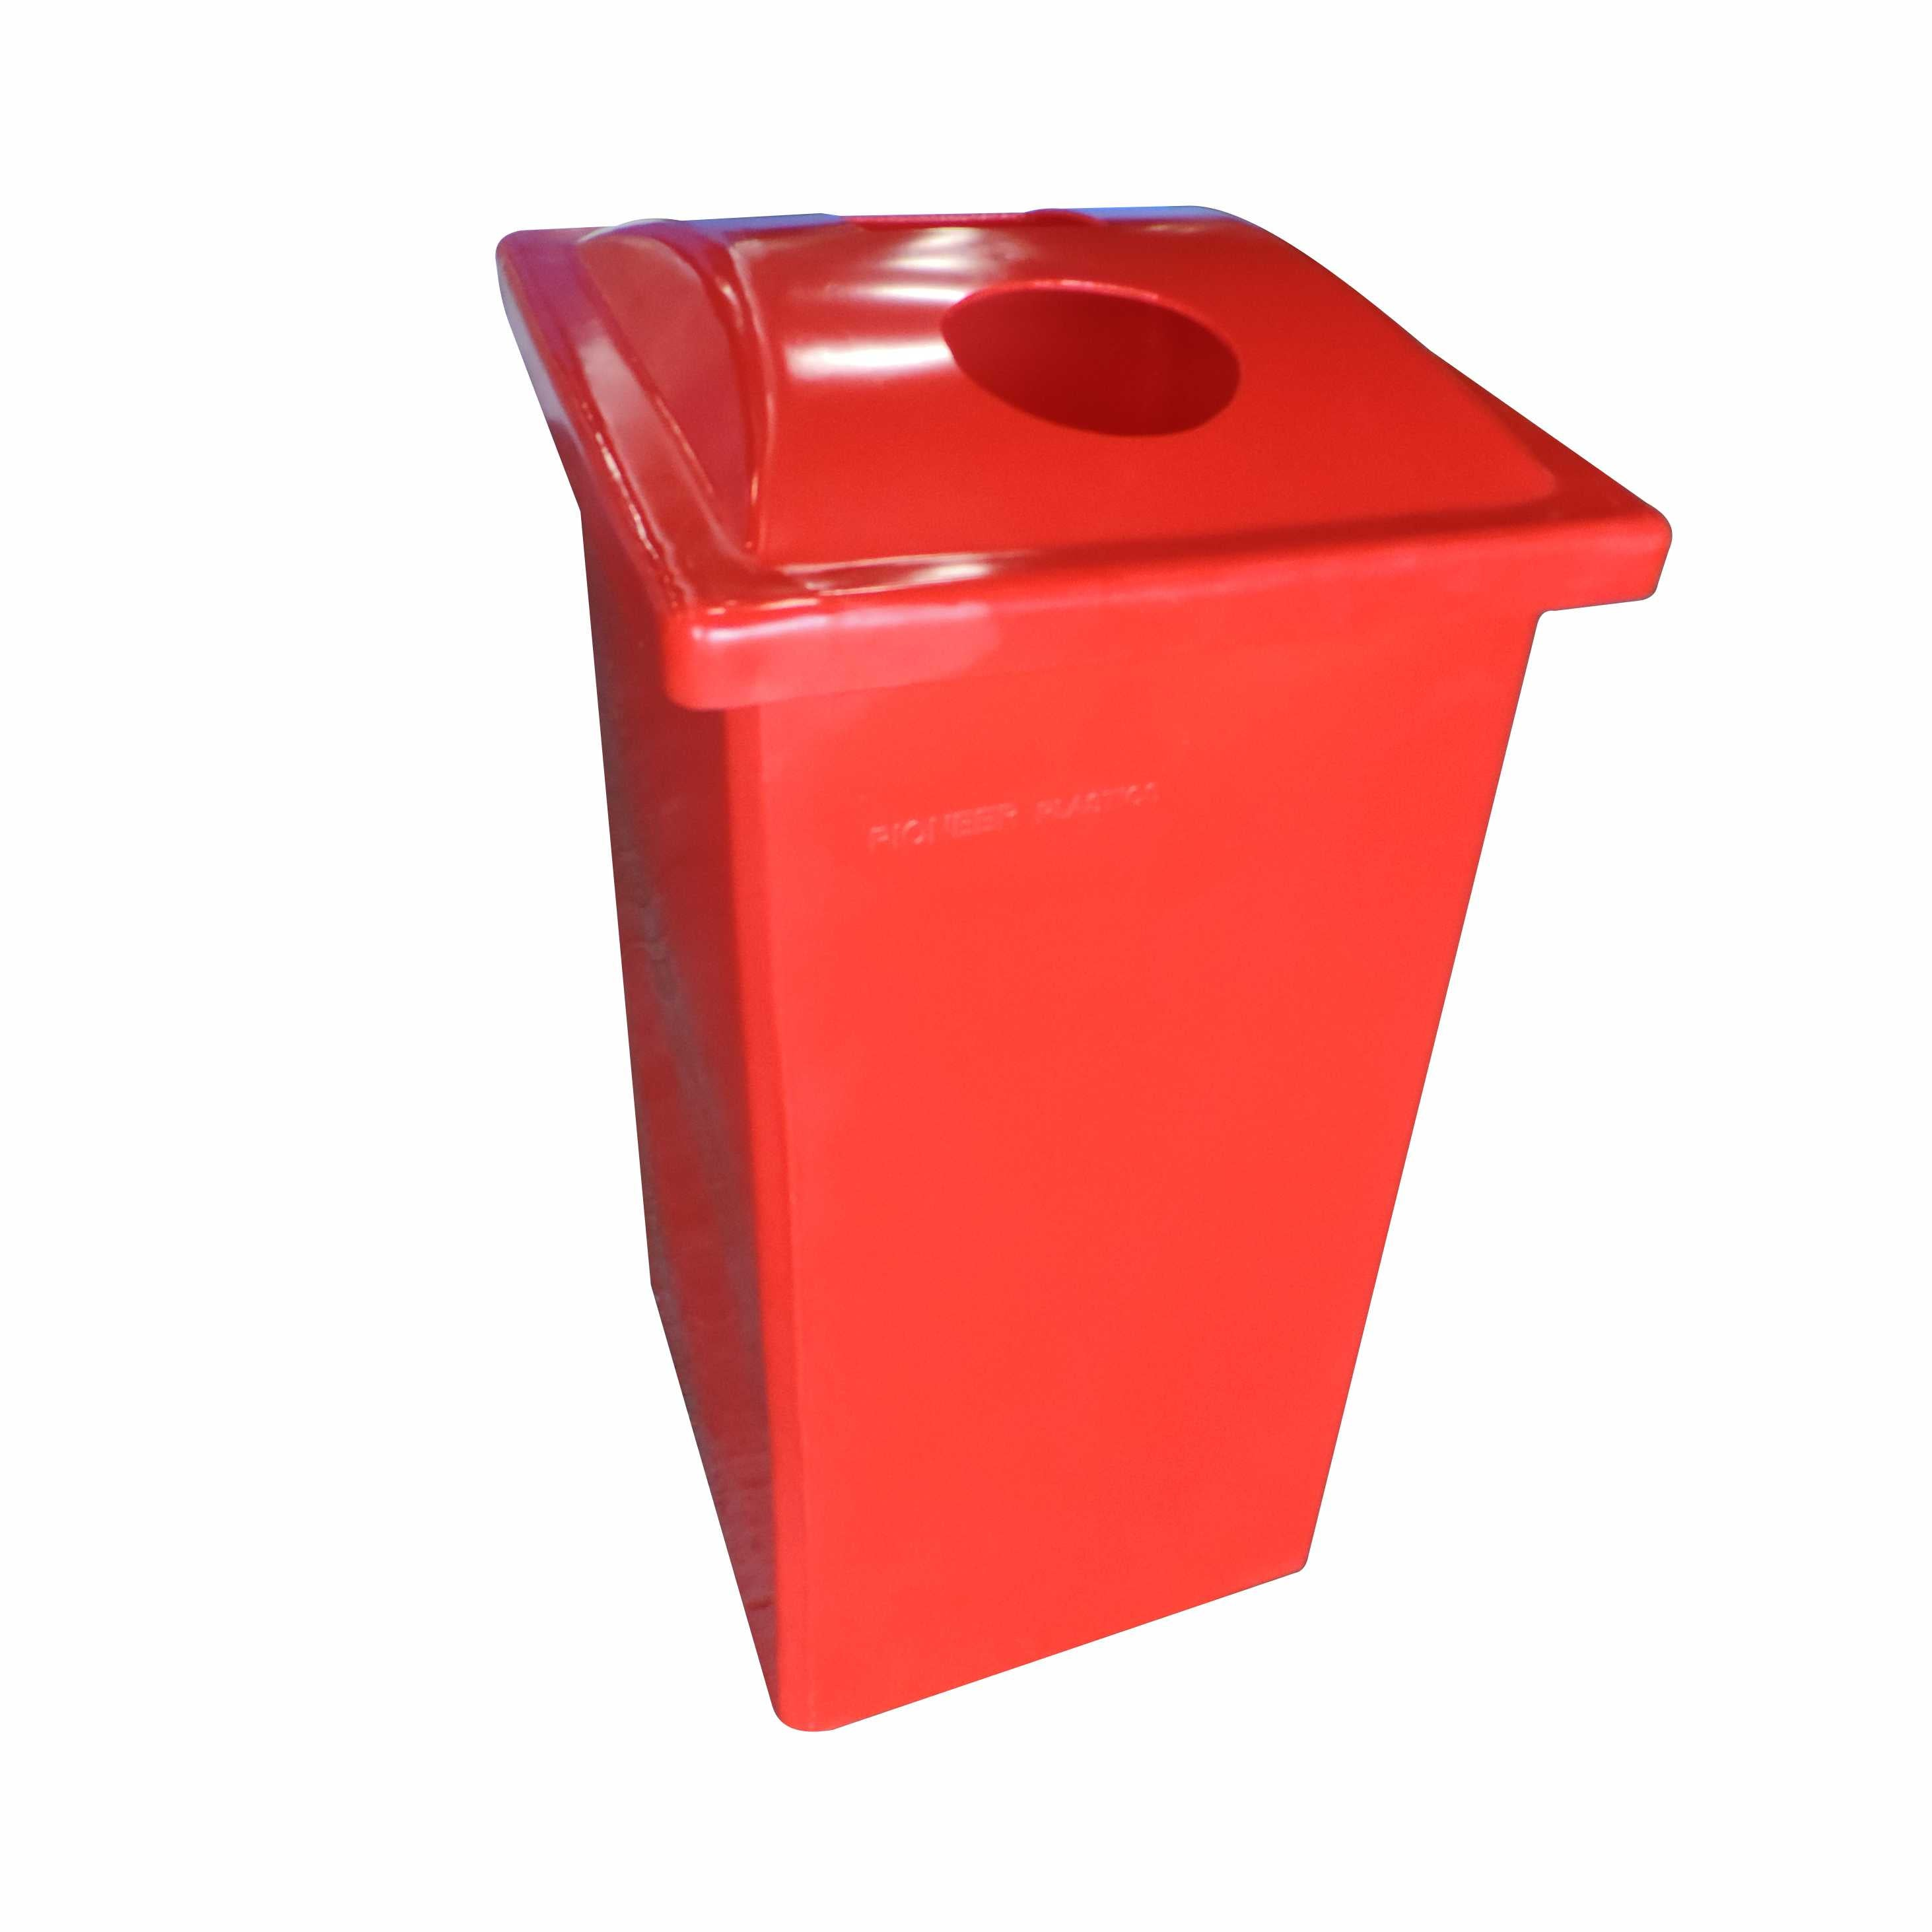 90L Recycle Bin with Lid